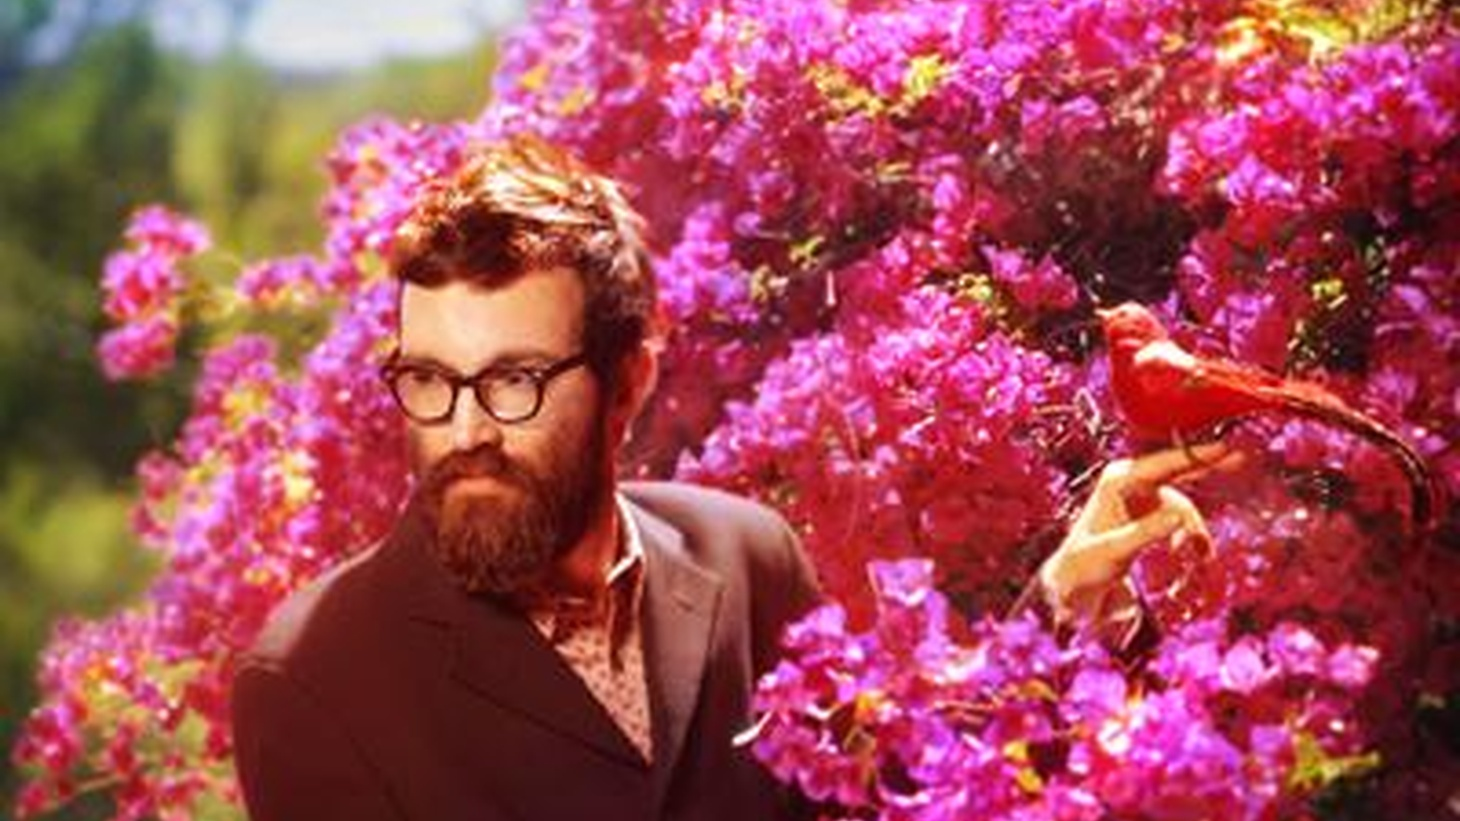 Mark Oliver Everett explores themes of desire, loss, and redemption in songs he performs as Eels. He'll play some of his new tracks for Morning Becomes Eclectic at 11:15am.